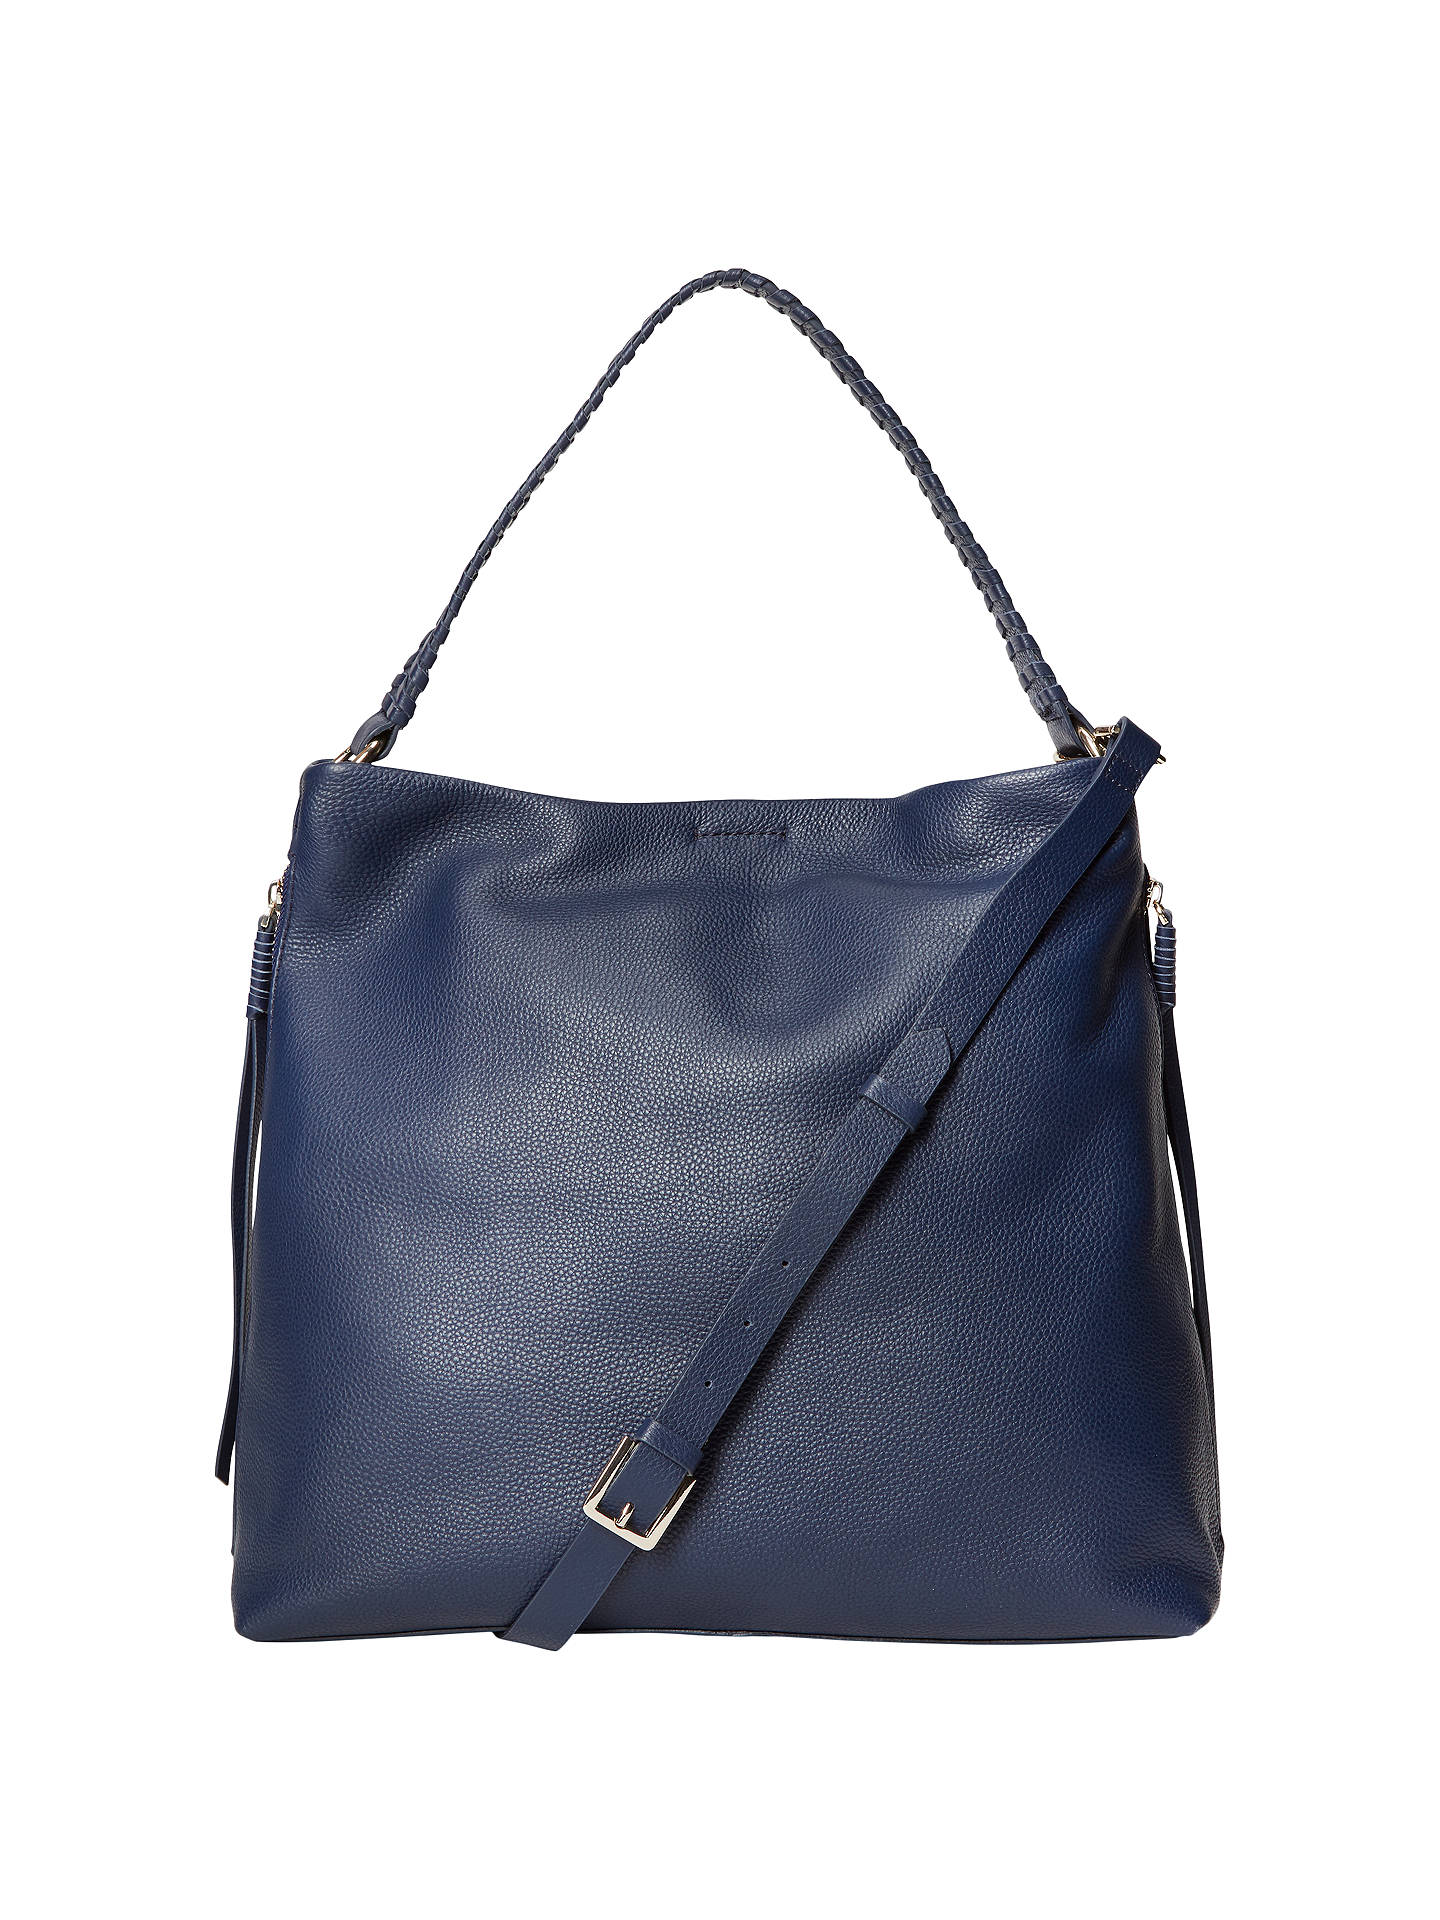 White Stuff Shea Leather Hobo Bag Navy Online At Johnlewis